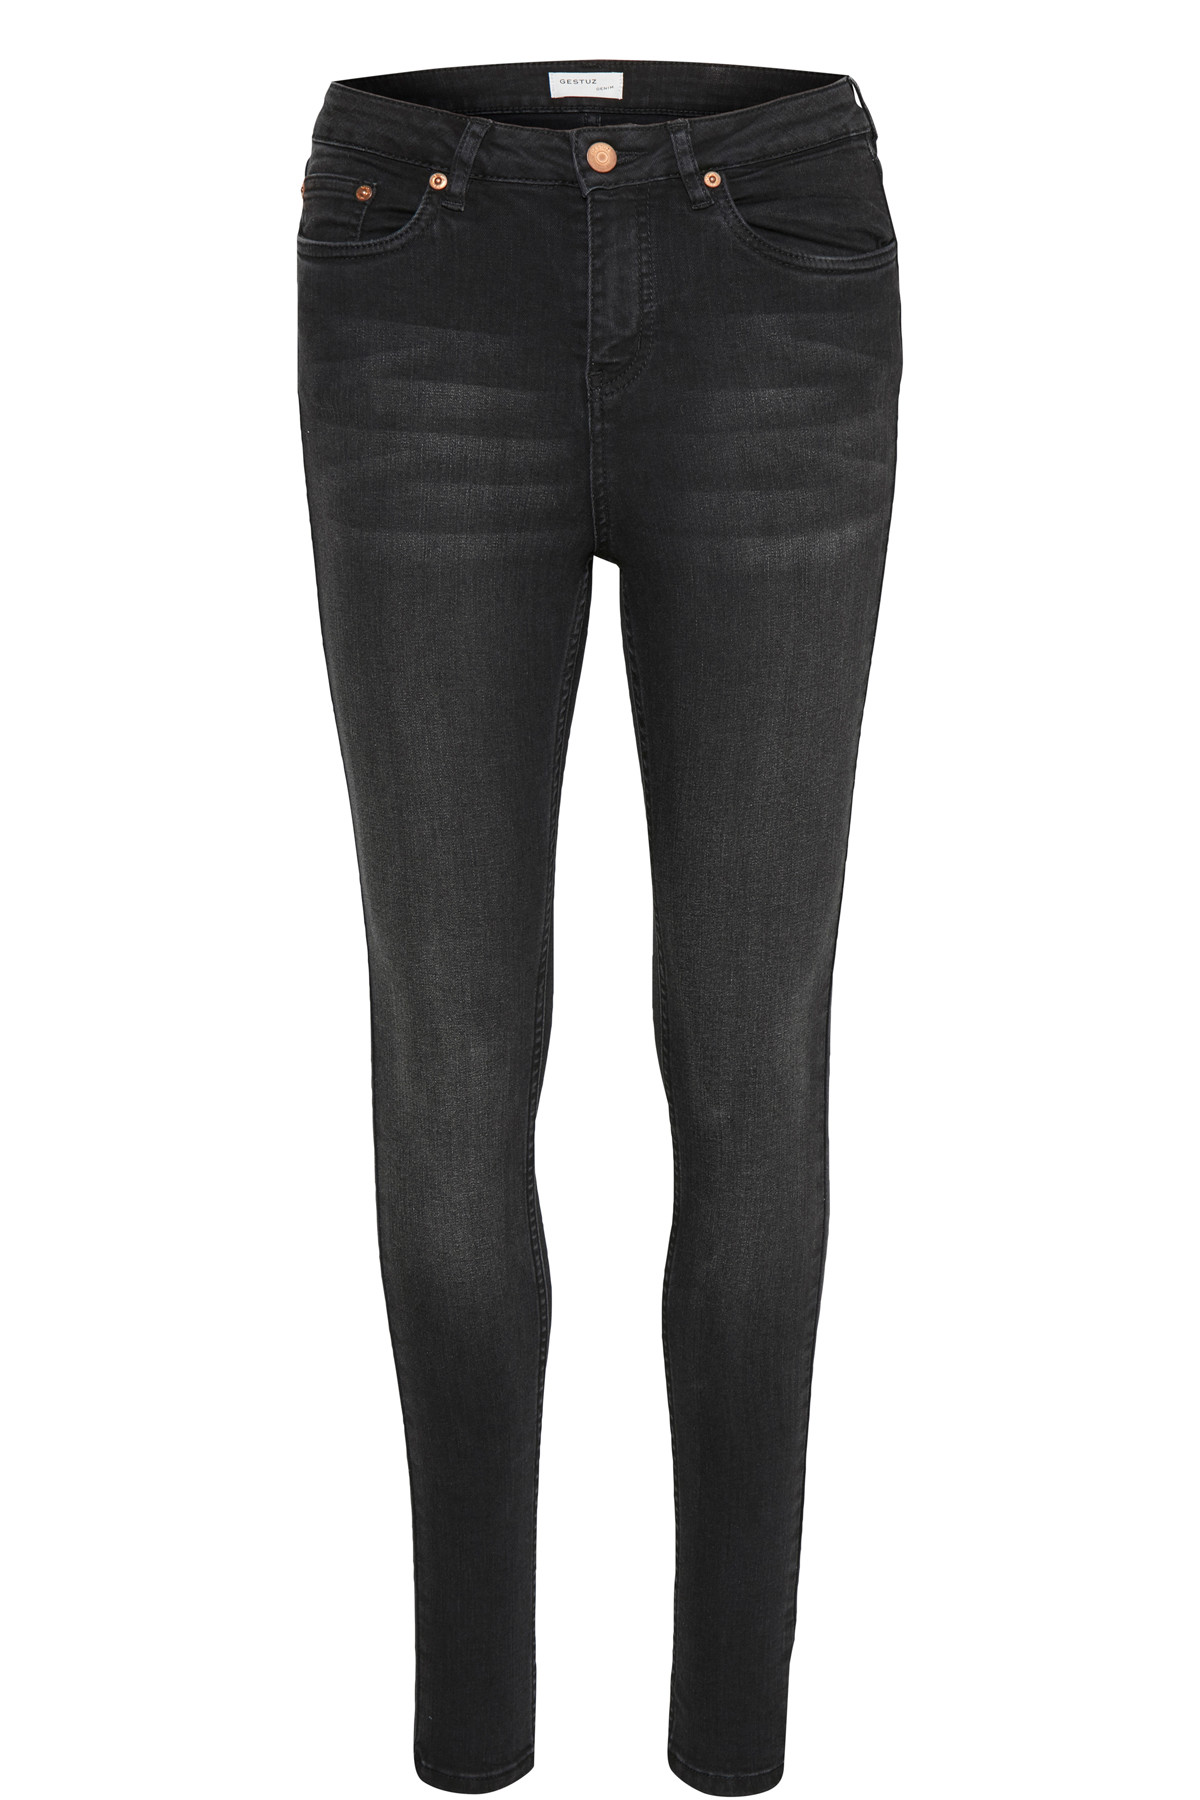 Image of   GESTUZ EMILY JEANS 10900068 (Charcoal Grey 90899, 30, 27)